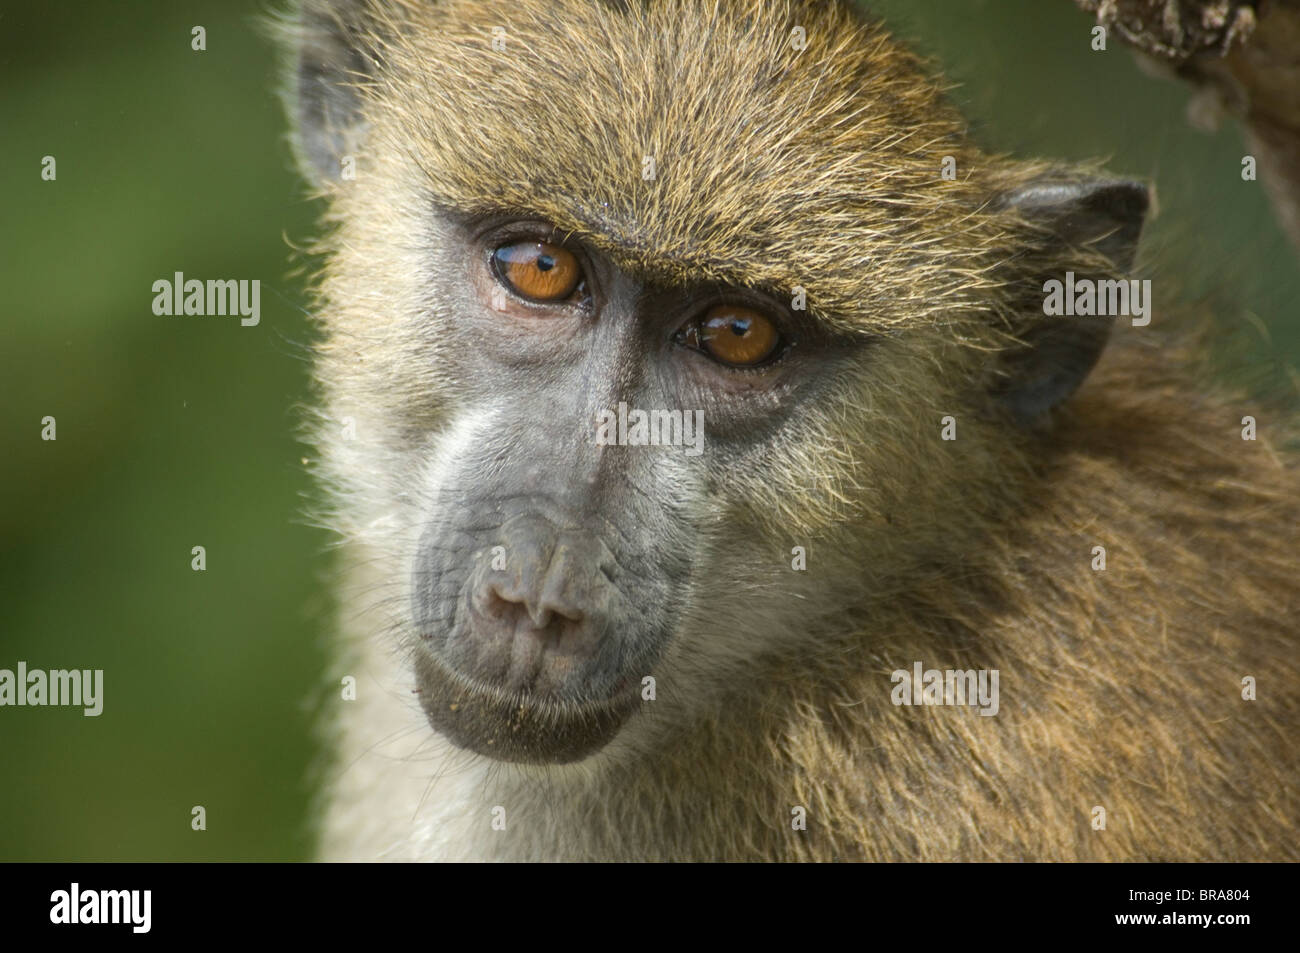 CLOSE-UP FACE OF YELLOW BABOON IN TREE AMBOSELI NATIONAL PARK KENYA AFRICA - Stock Image